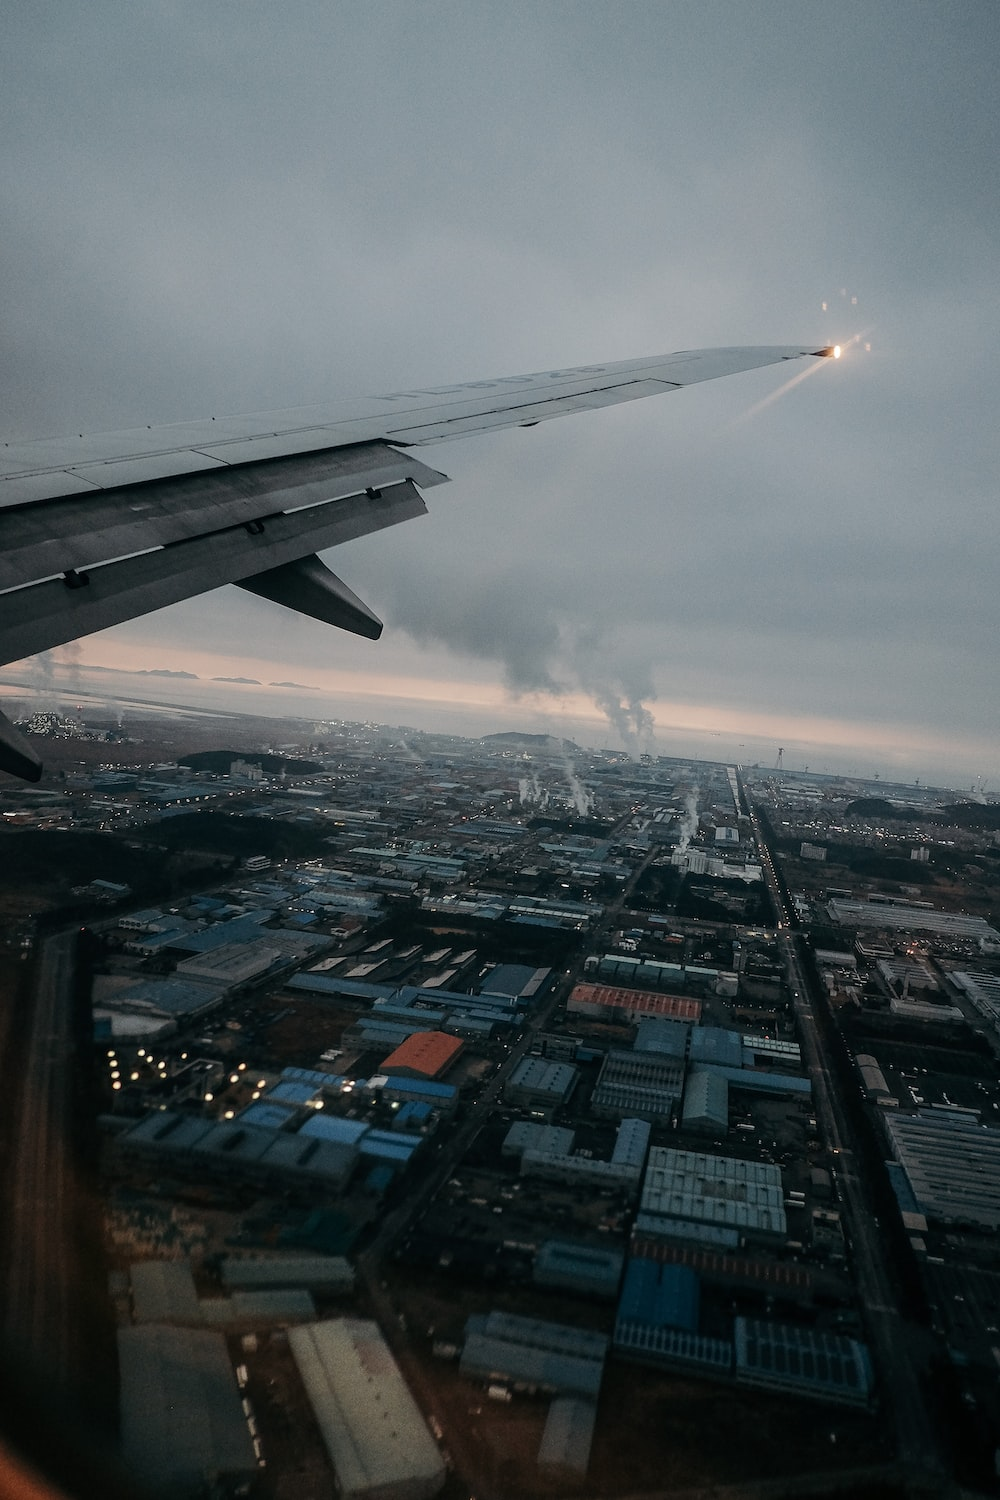 white and gray airplane wing over city during daytime